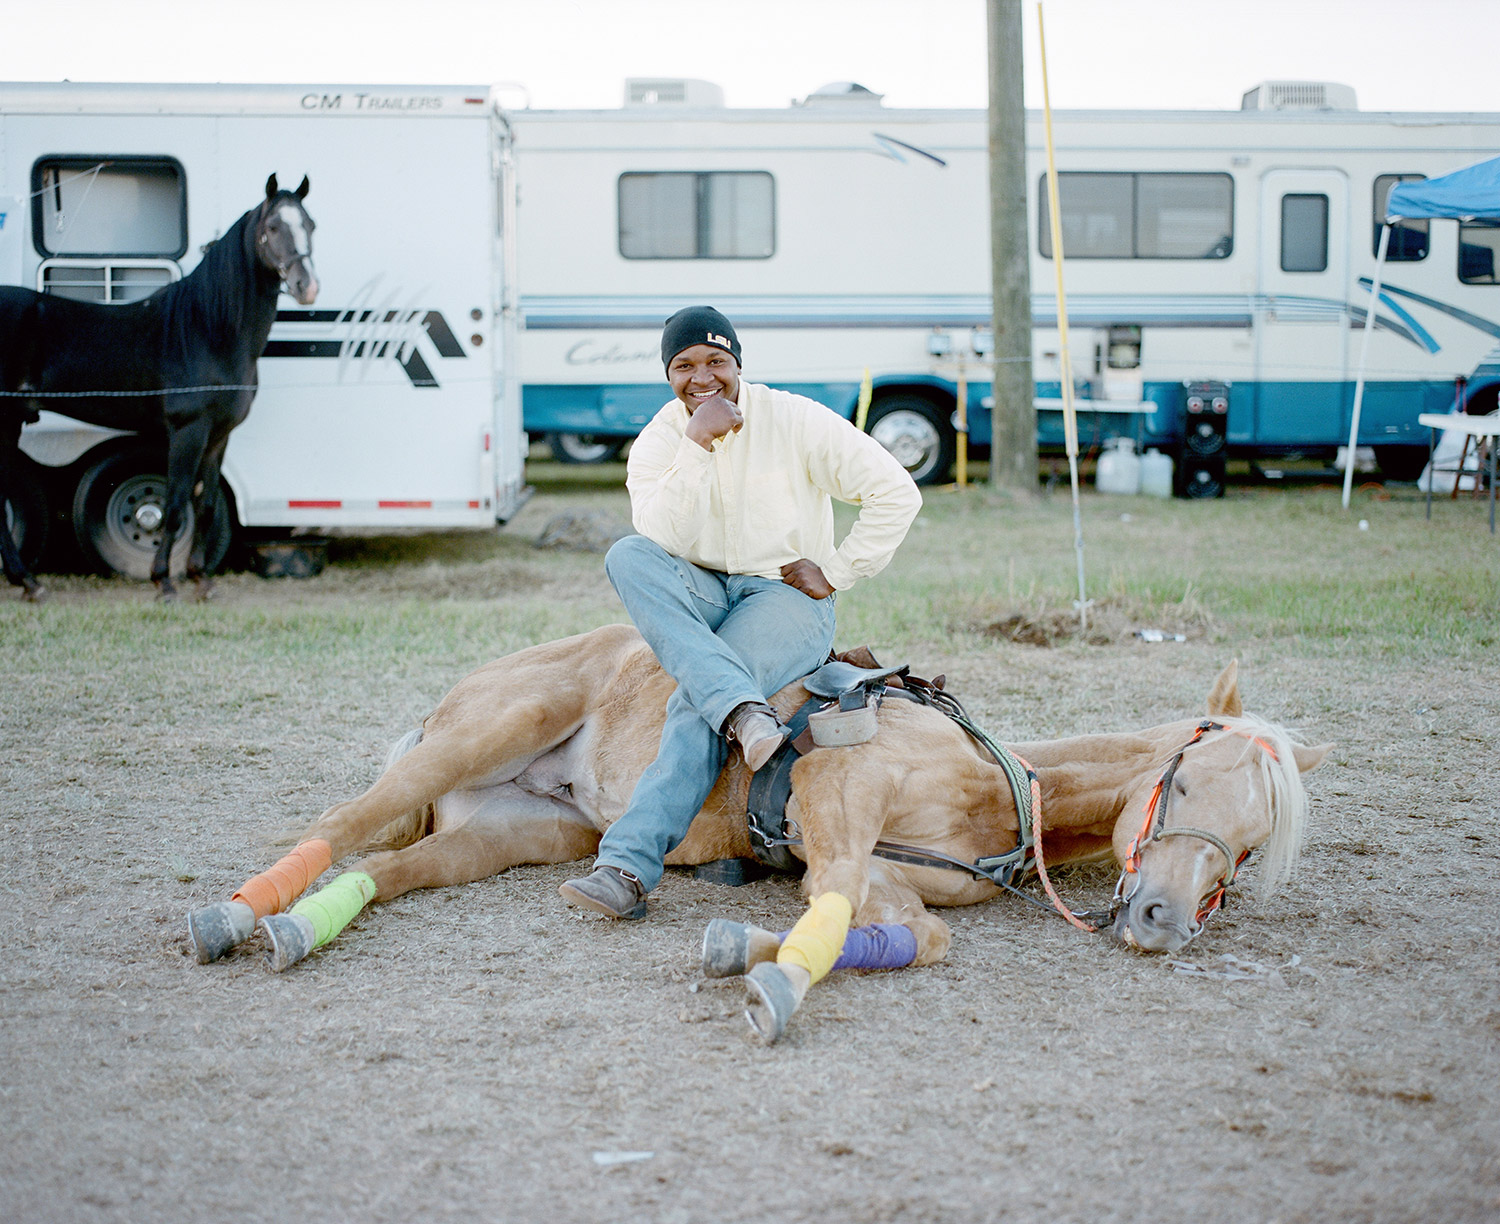 A man shows a trick during a trail ride in Southern Louisiana. 2014